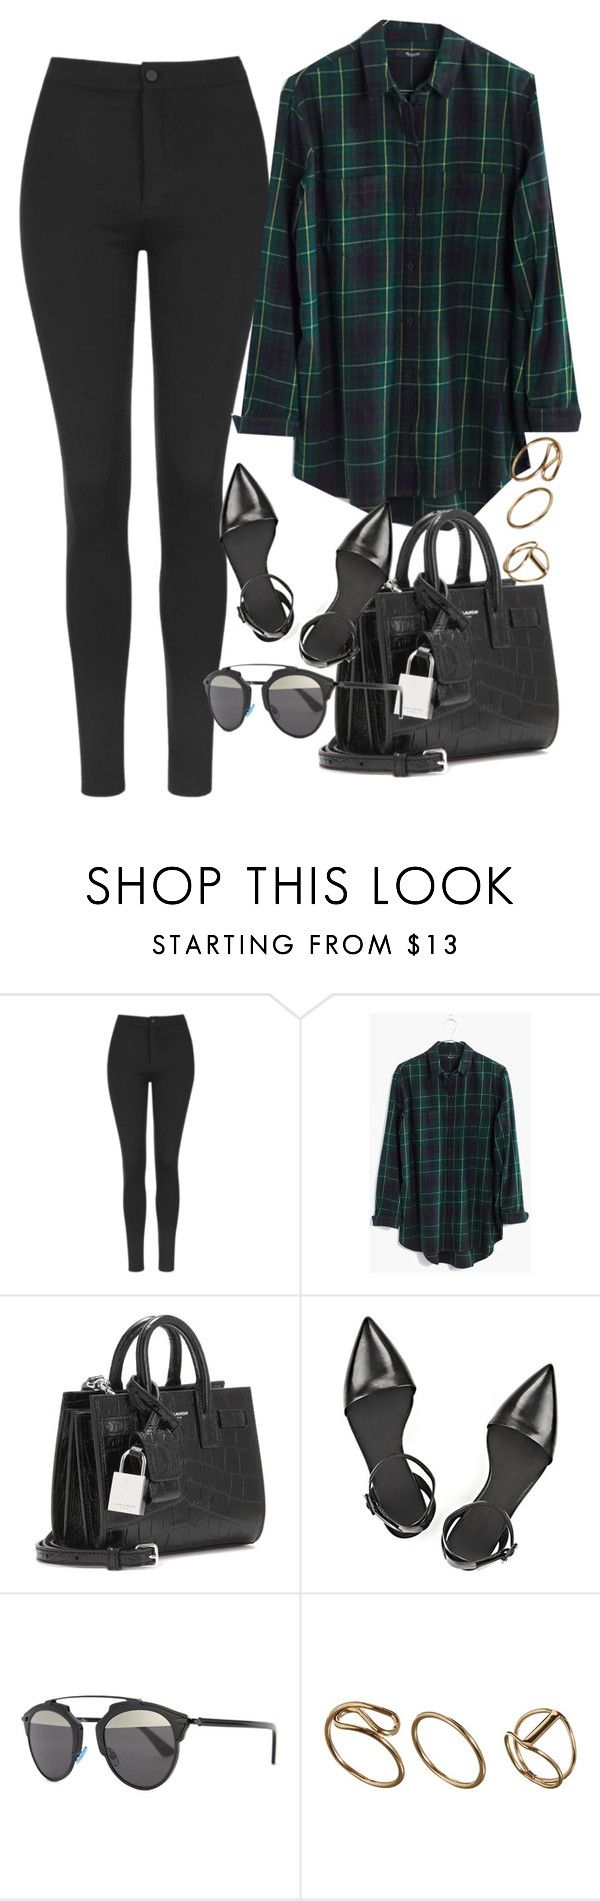 """""""Untitled #3291"""" by glitter-the-world ❤ liked on Polyvore featuring Topshop, Madewell, Yves Saint Laurent, Alexander Wang and Christian Dior"""